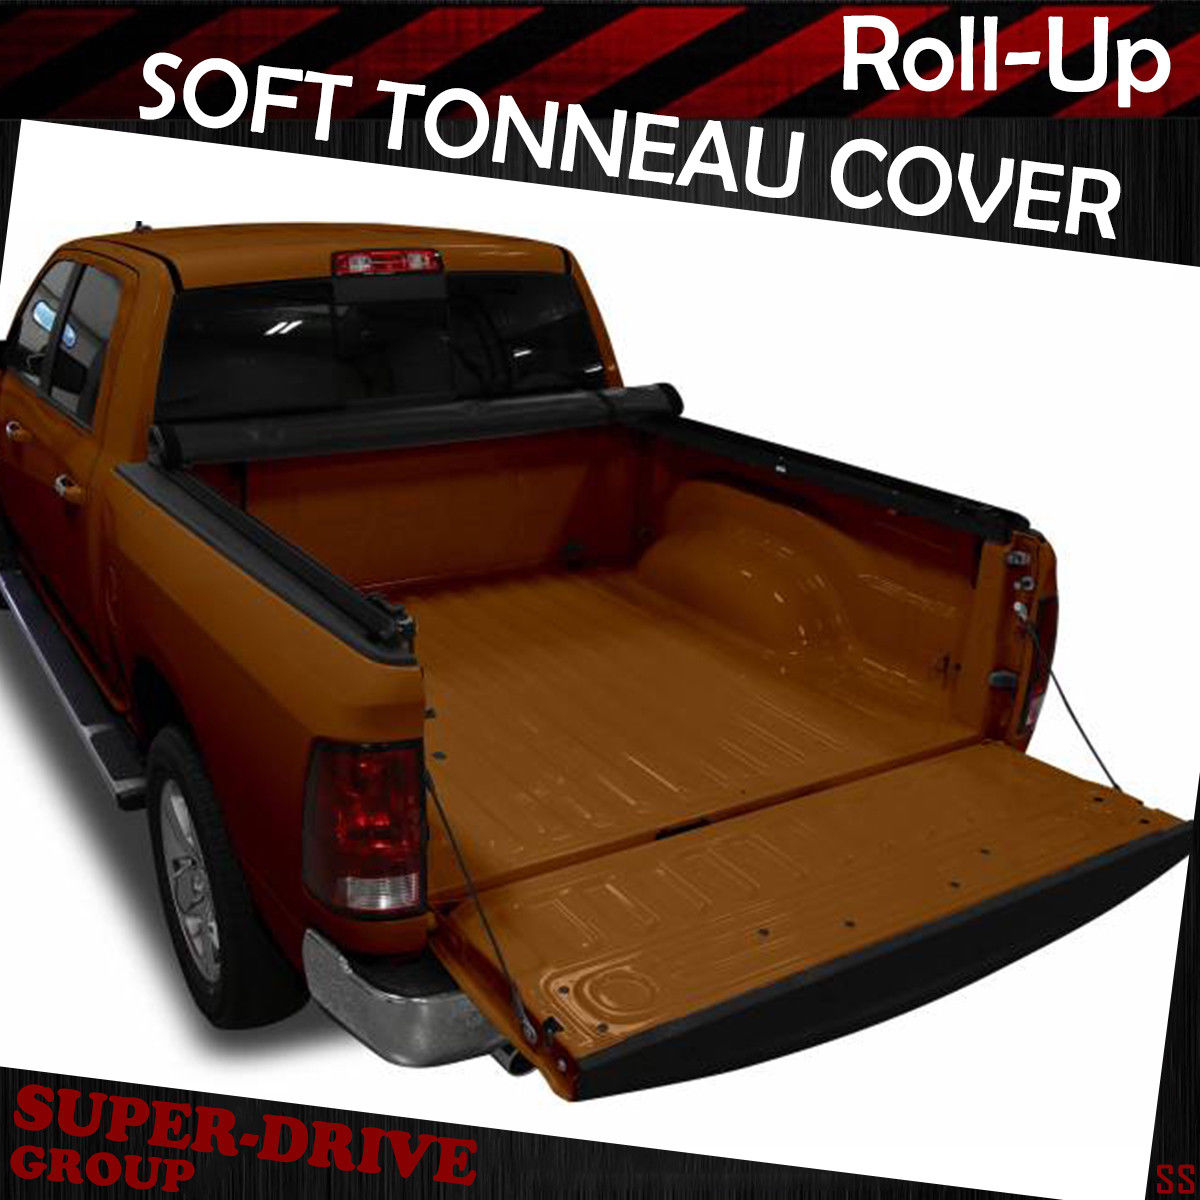 Lock Soft Roll Up Tonneau Cover For 2009 2018 Dodge Ram 1500 6 5ft 78in Bed Jasaangkut Co Id